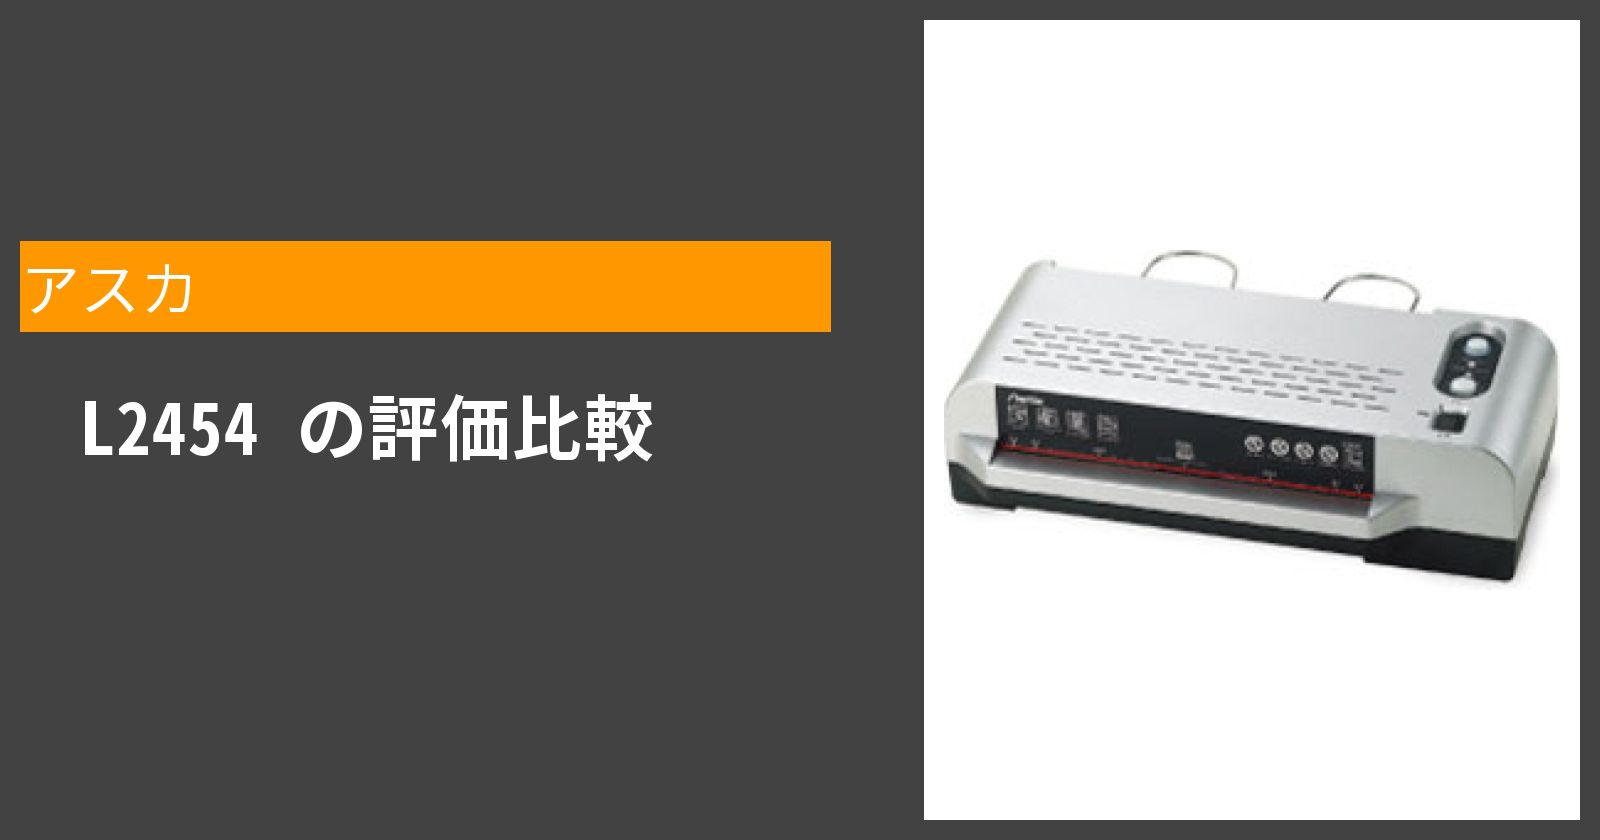 L2454を徹底評価